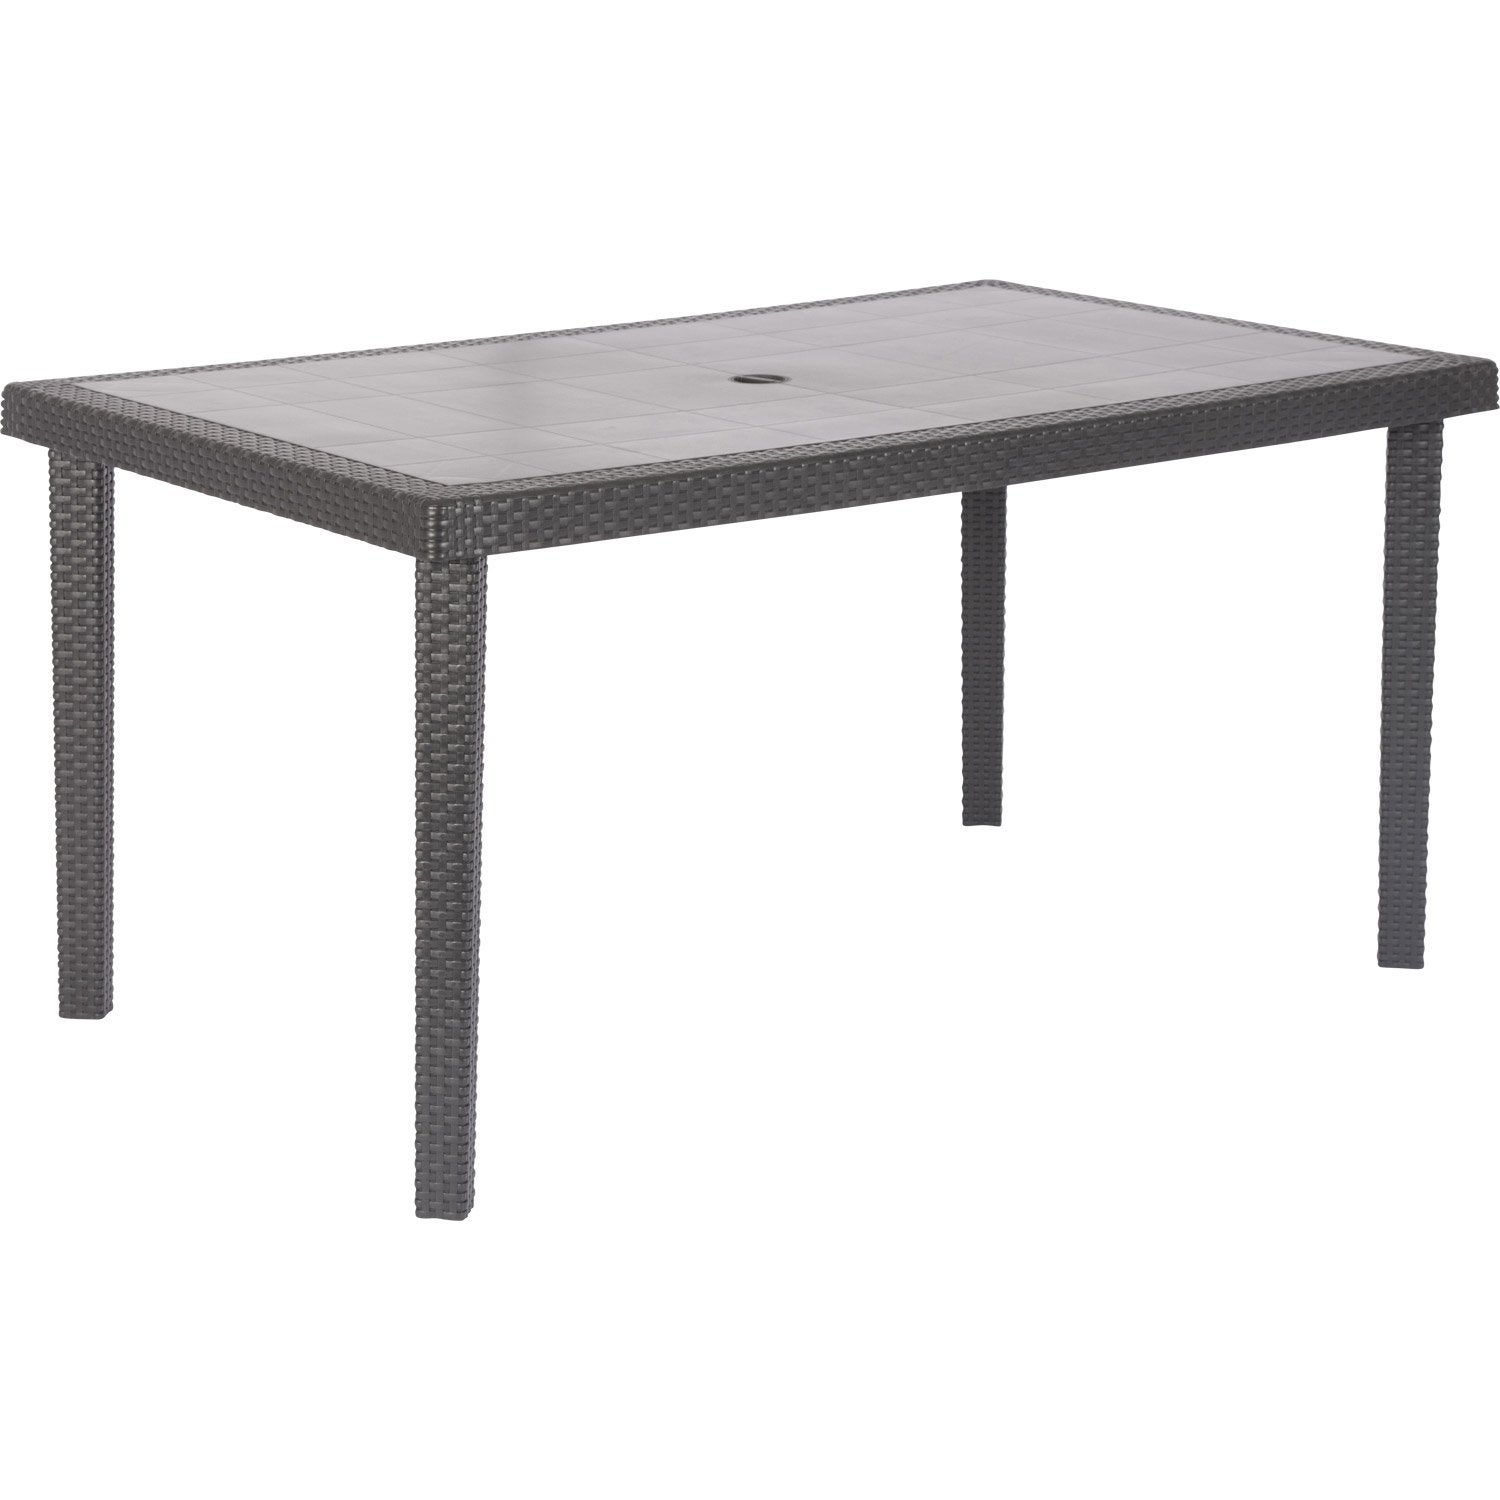 Table de jardin boh me rectangulaire anthracite 6 Table extensible 80 cm de large